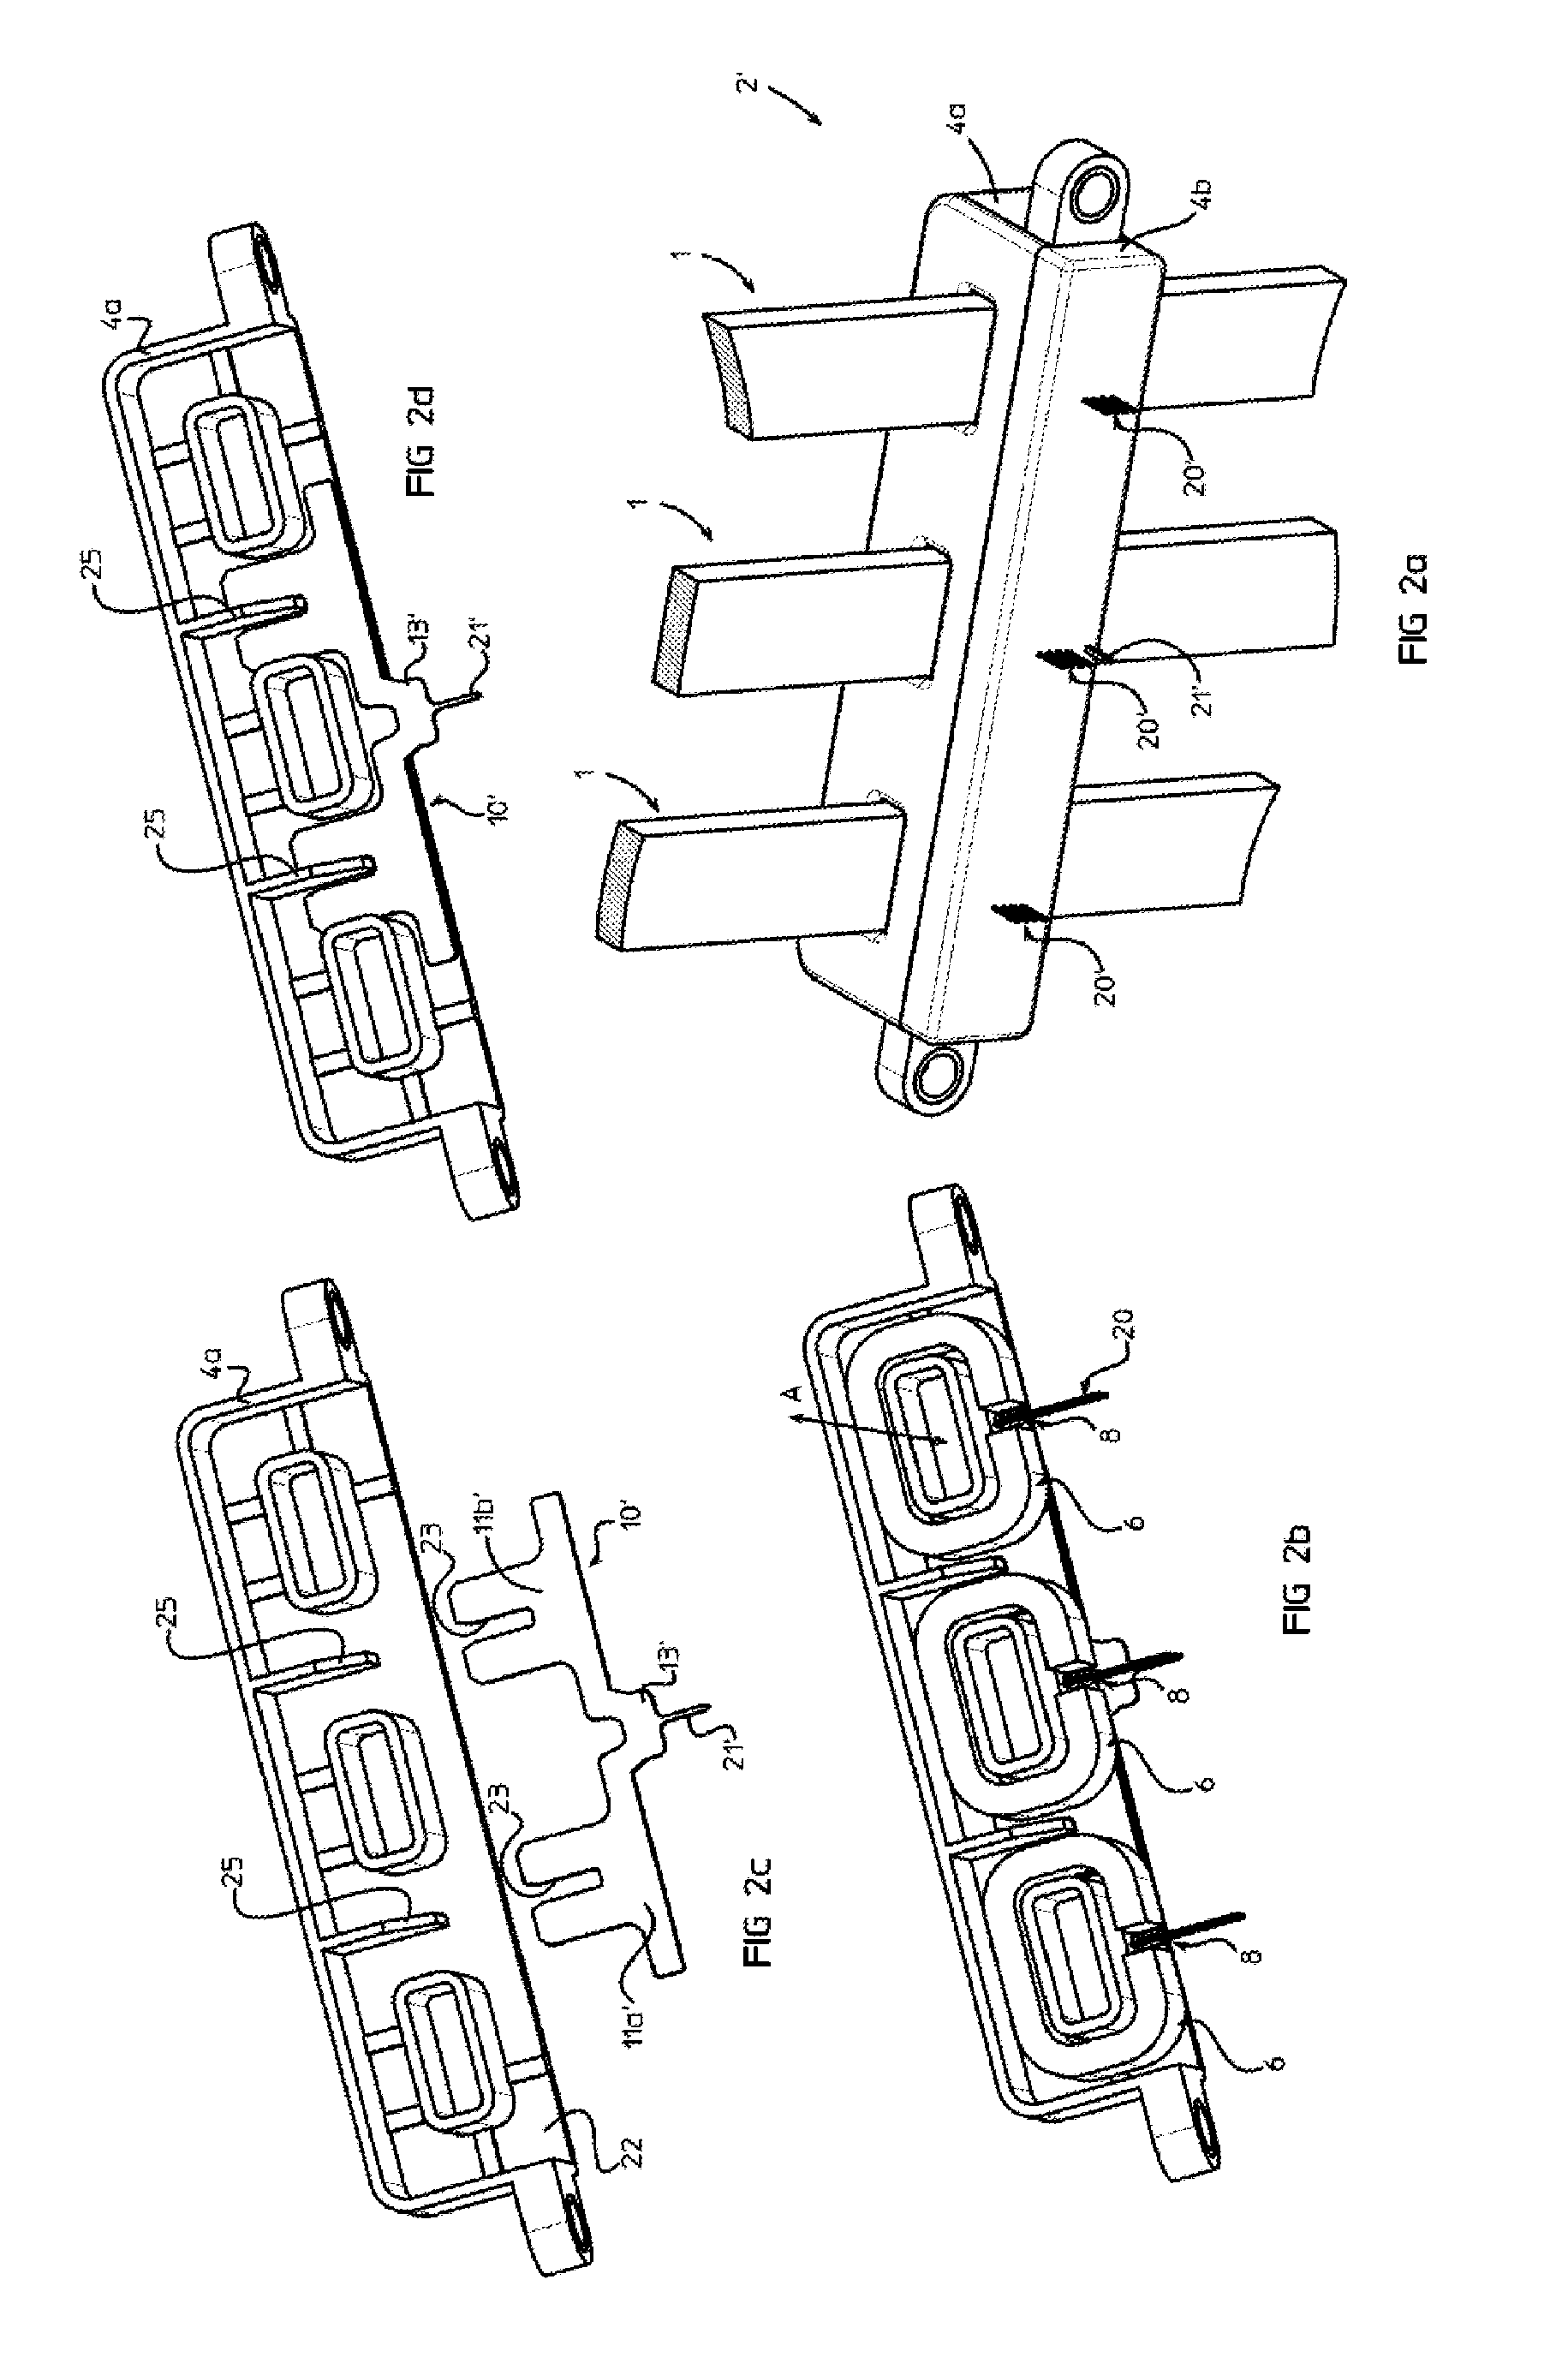 patent ep2546660a1 - electrical current sensor with grounded magnetic core